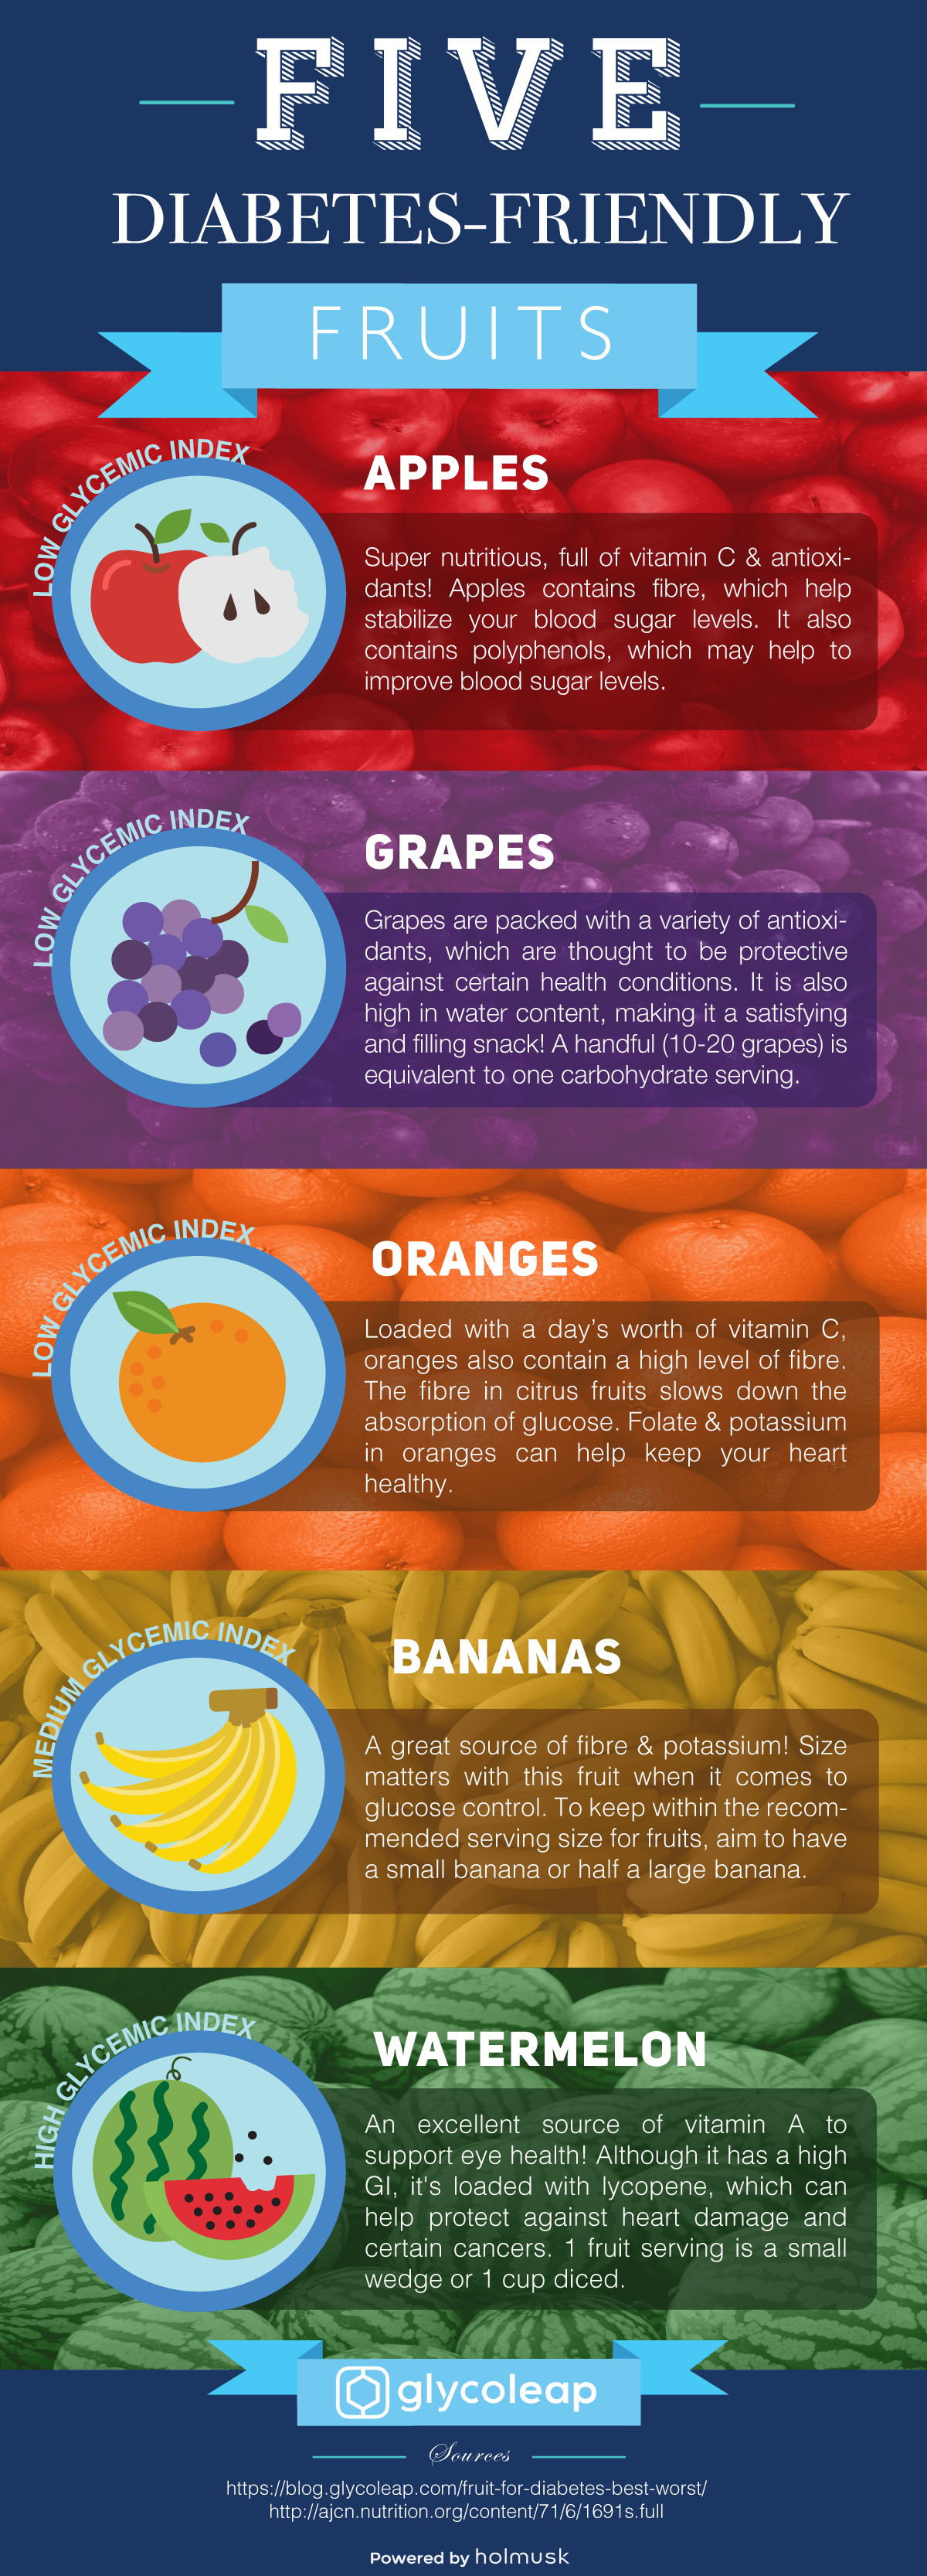 Five diabetes-friendly fruits infographic